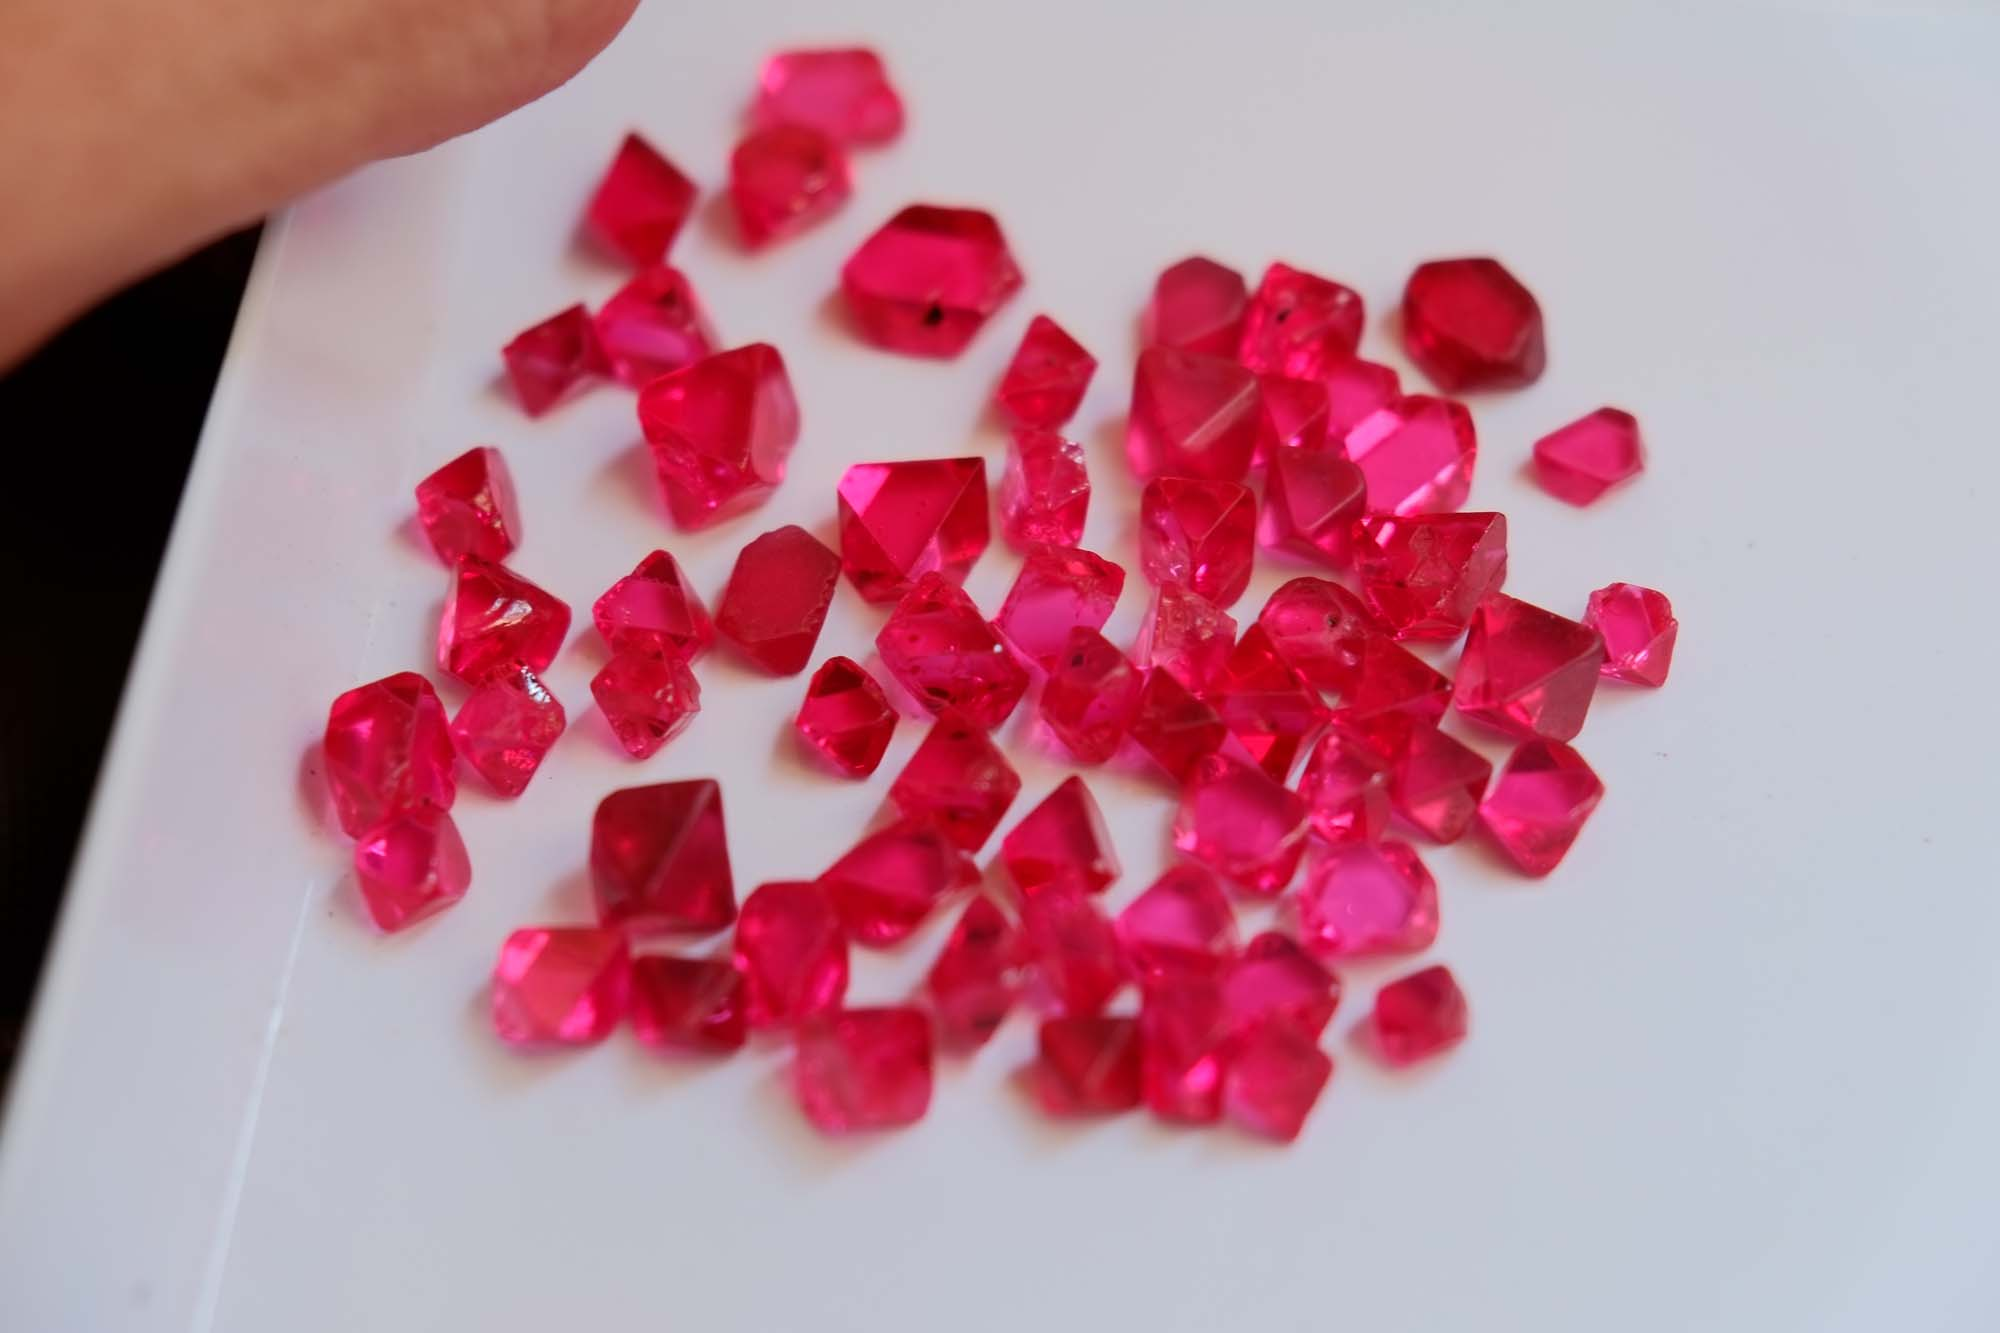 Intense colored spinel crystals from Burma.